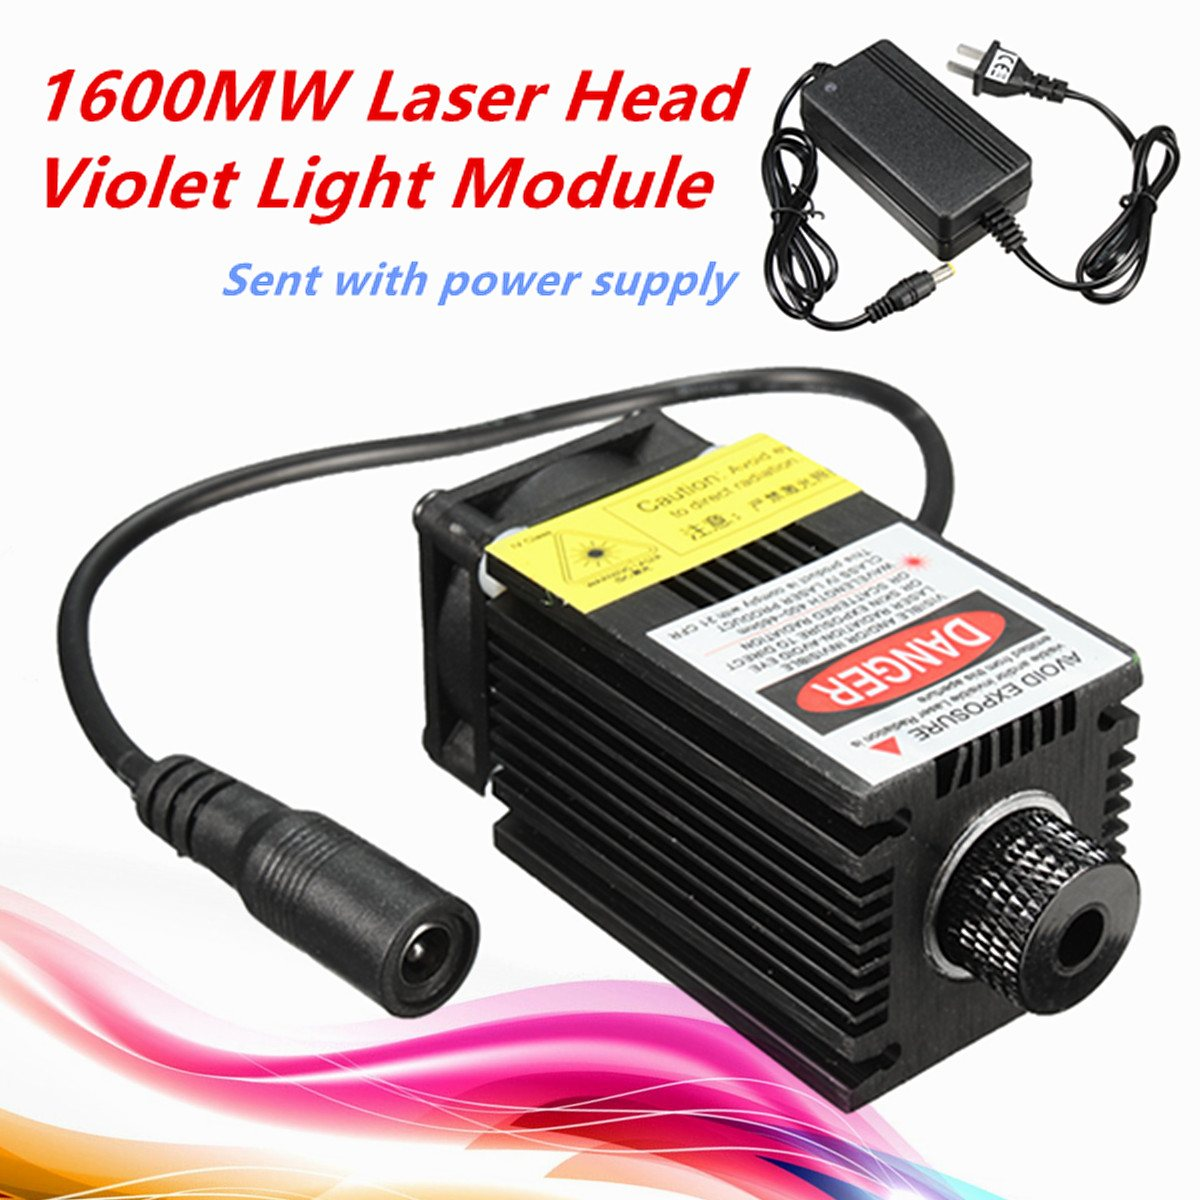 1Pcs New 12V 1.6W 1600MW Laser Module Engraving Head For DIY USB CNC Cutting Printing Machine + Power Supply laser head owx8060 owy8075 onp8170